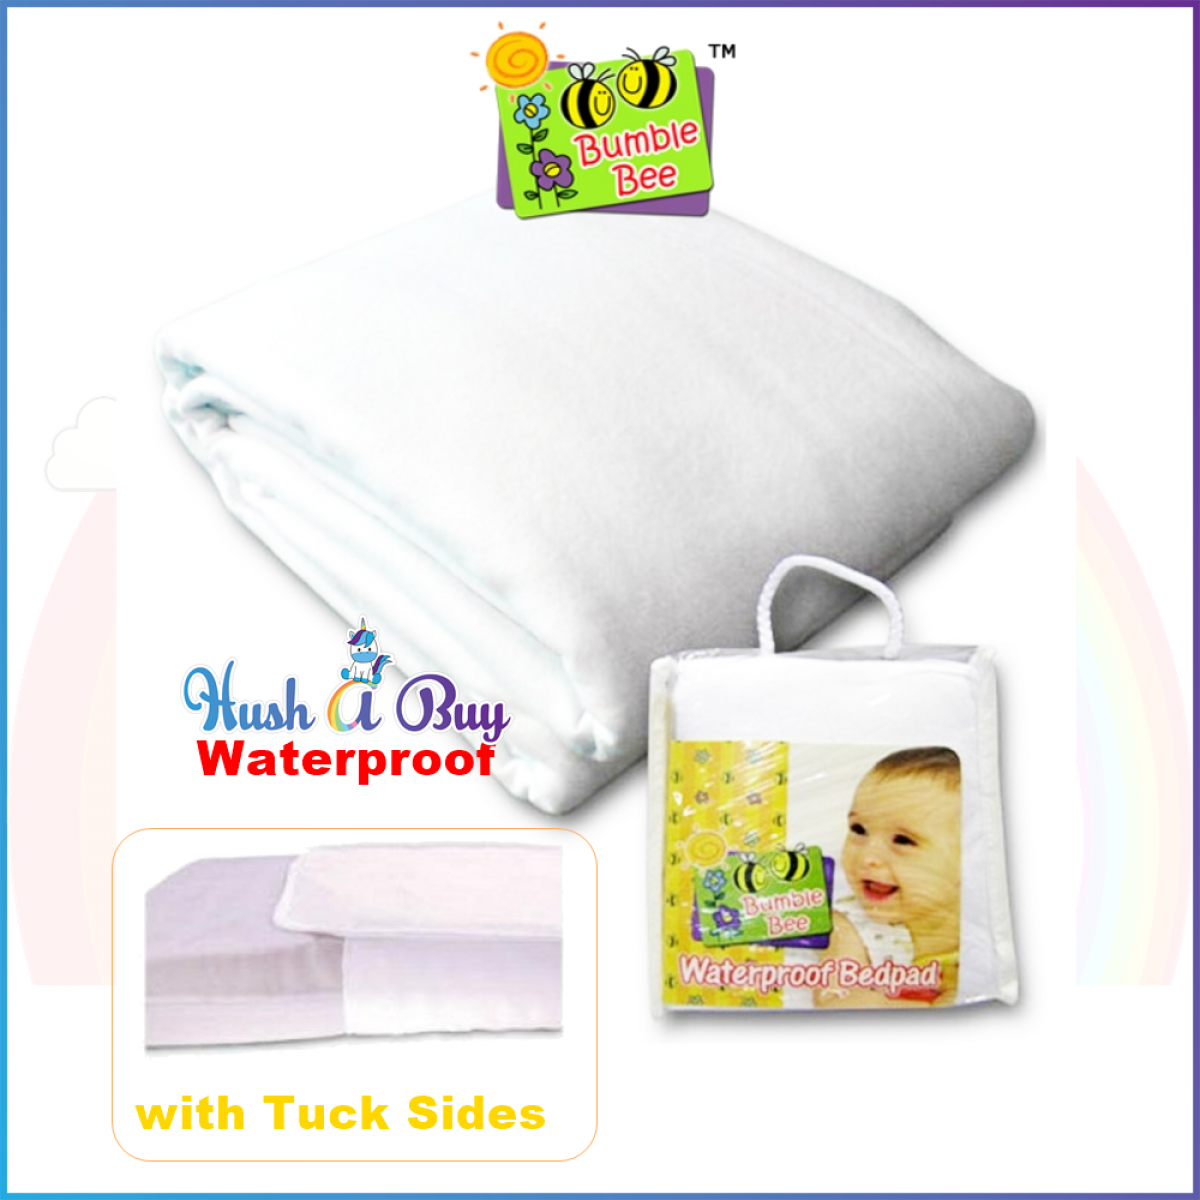 Bumble Bee Waterproof Bedpad with Tuck Sides